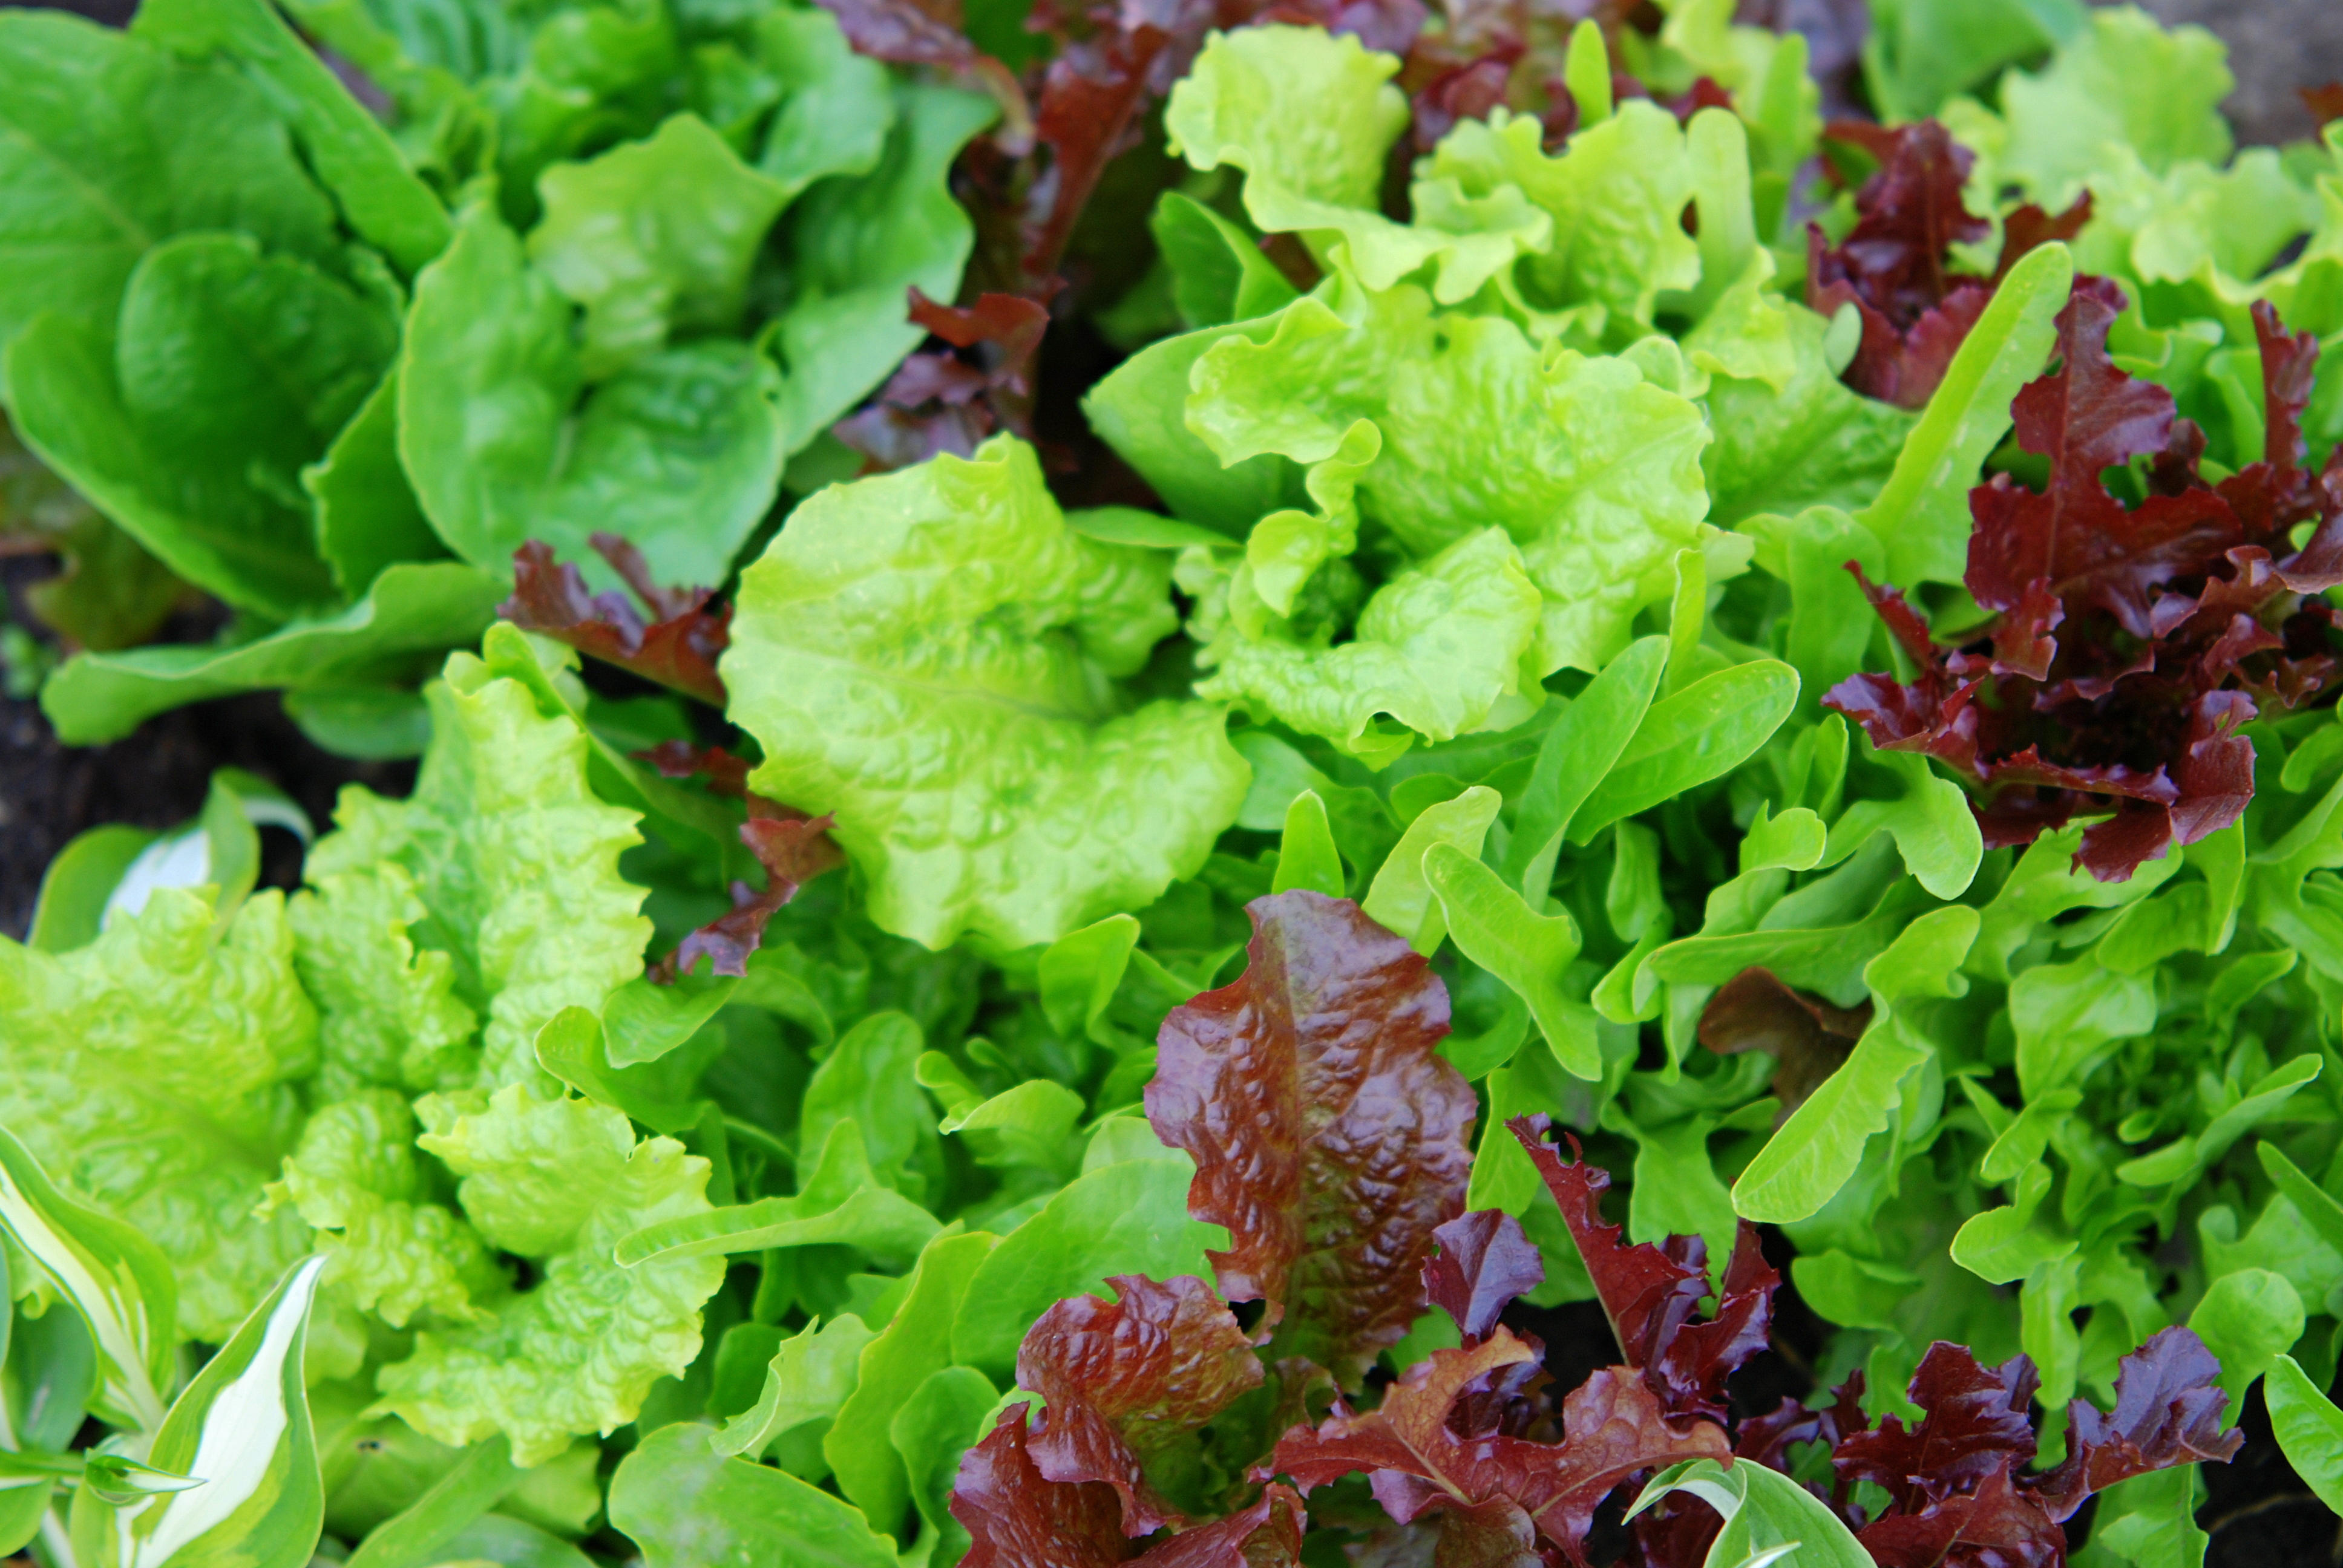 Bagged Salad Can Raise Salmonella Risk Spread Food Poisoning Cbs News